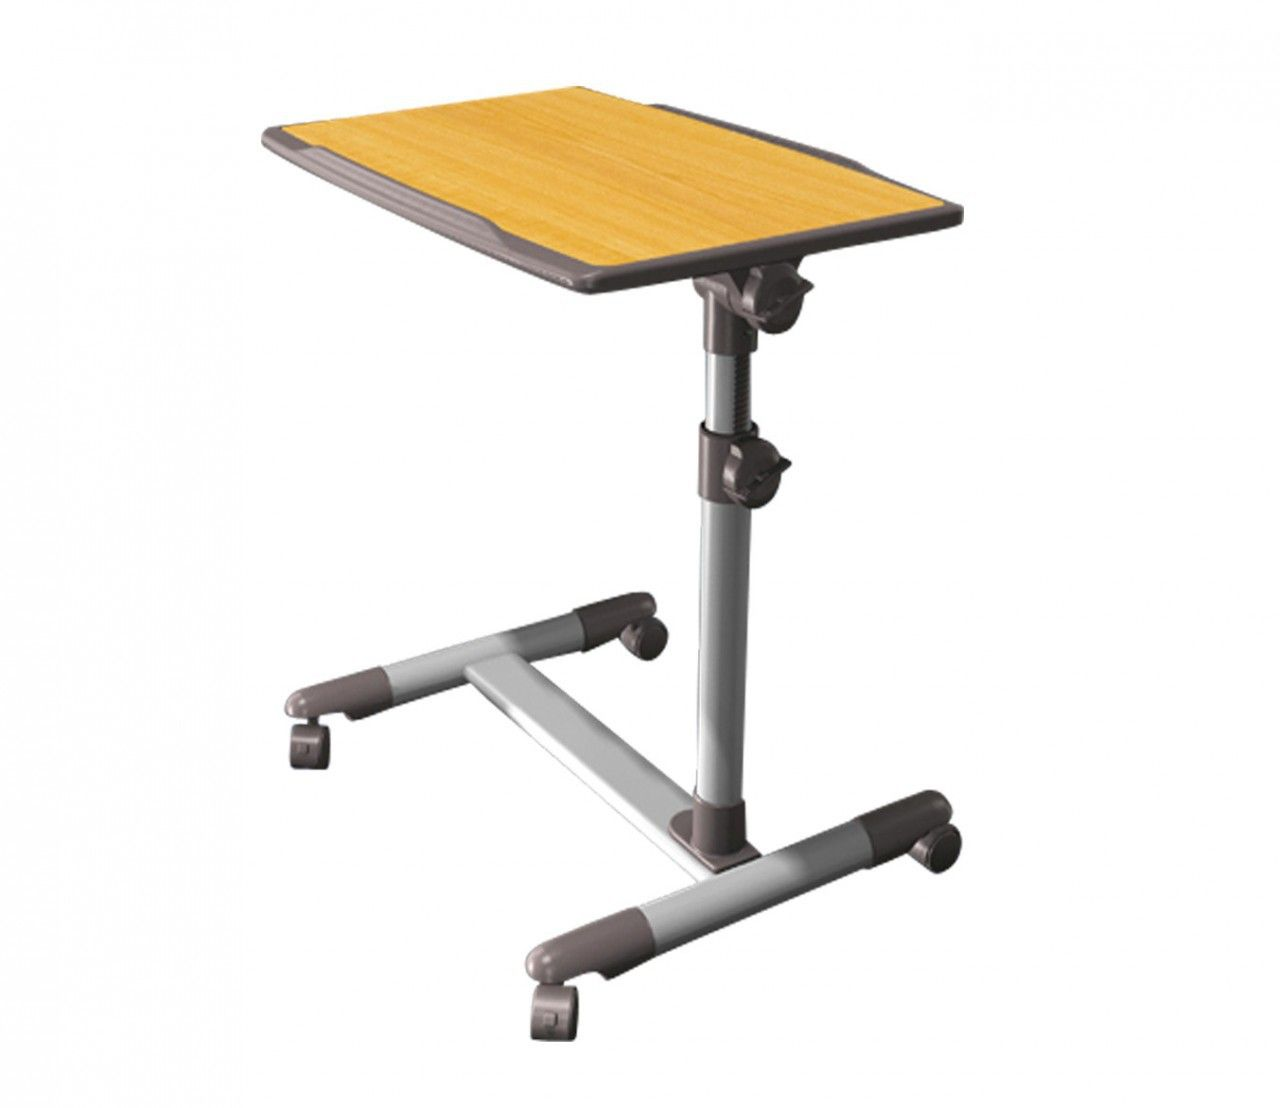 Laptop Table An ergonomically designed height and angle